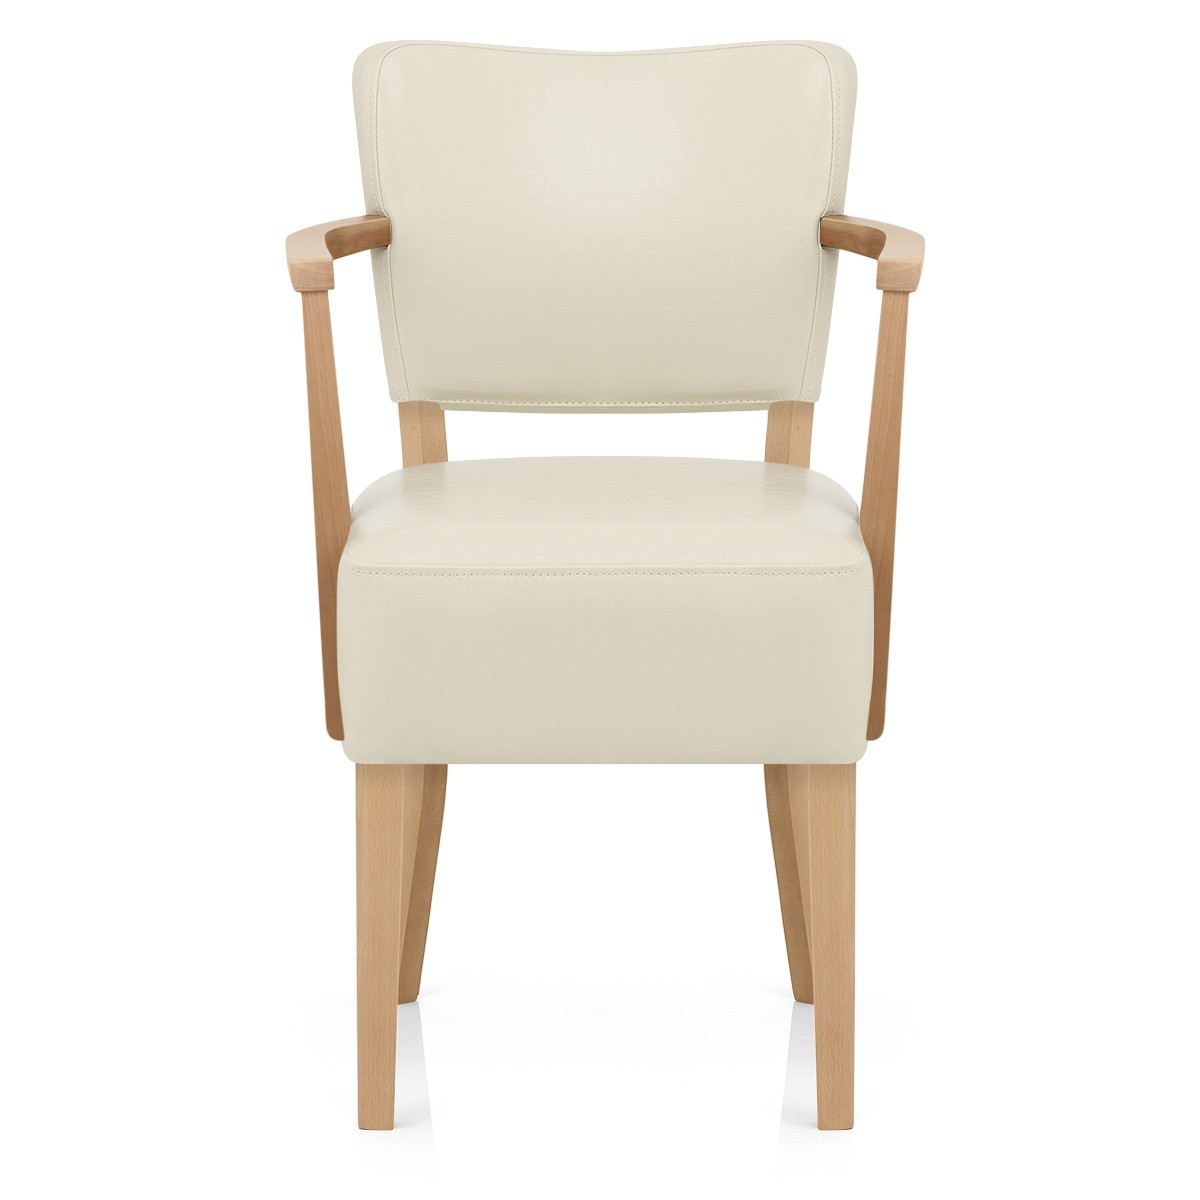 Oak Chairs With Arms ~ Ramsay oak chair with arms cream amr furniture